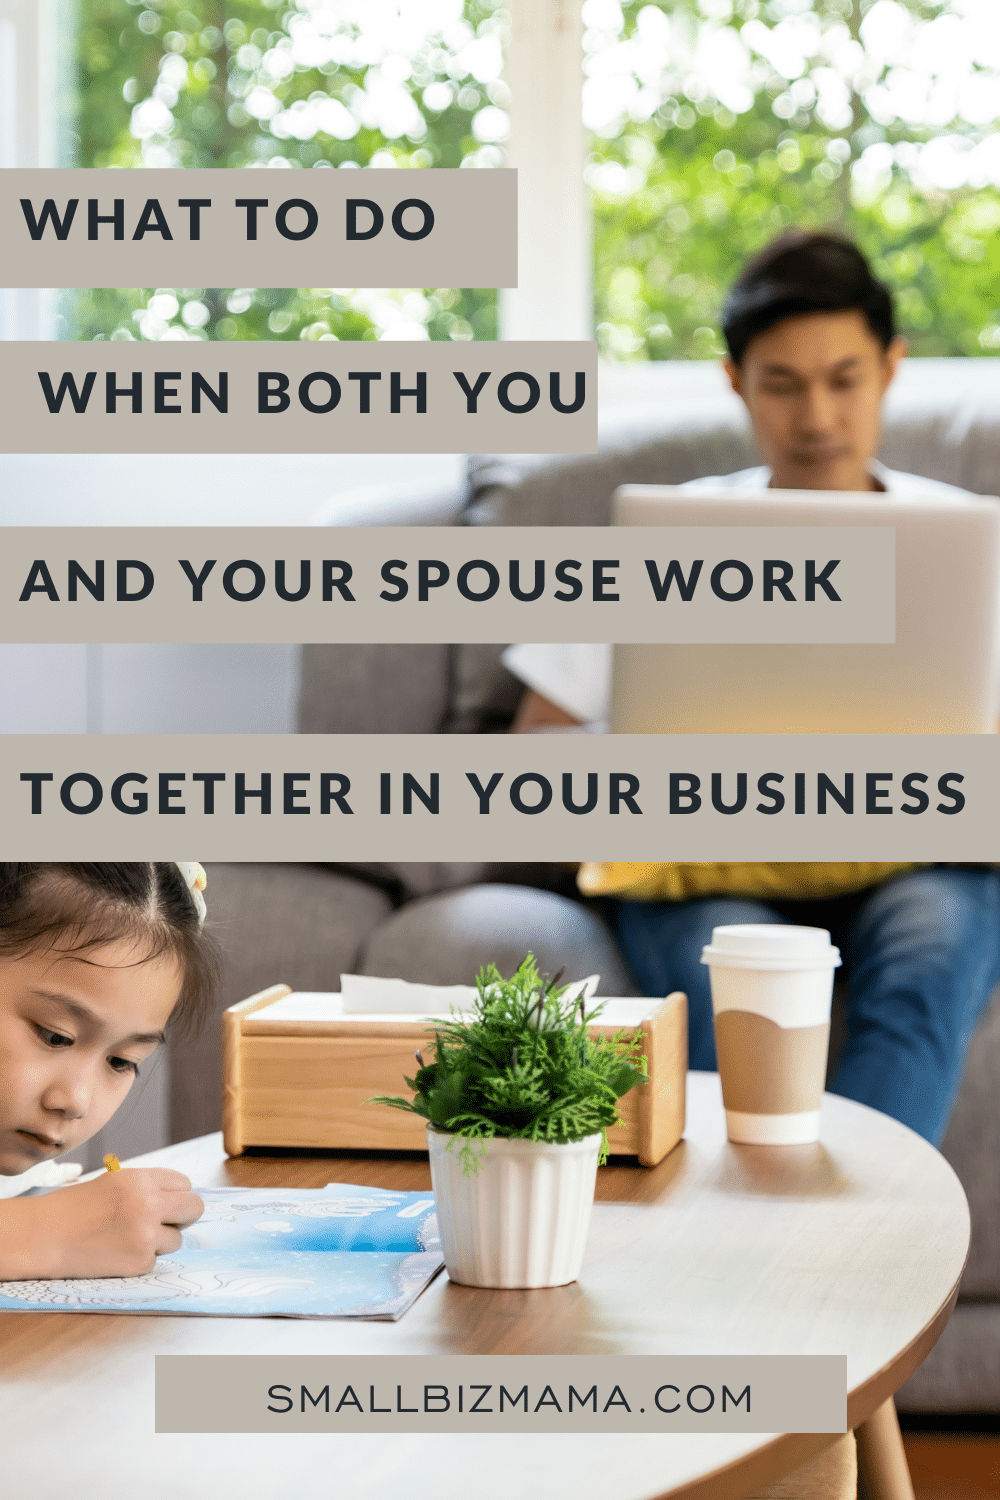 What to do when both you and your spouse work together in your business